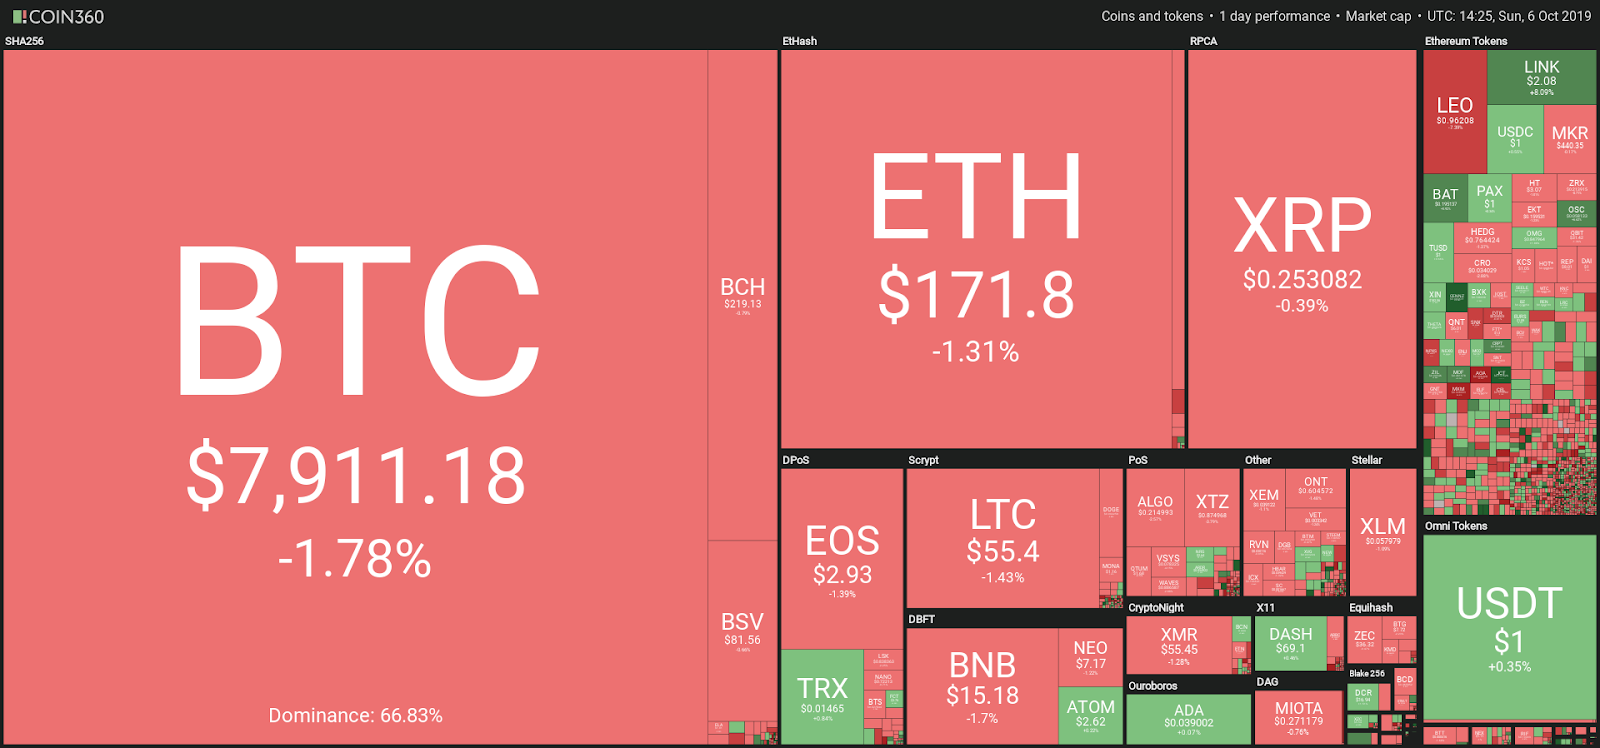 Weekly crypto market performance